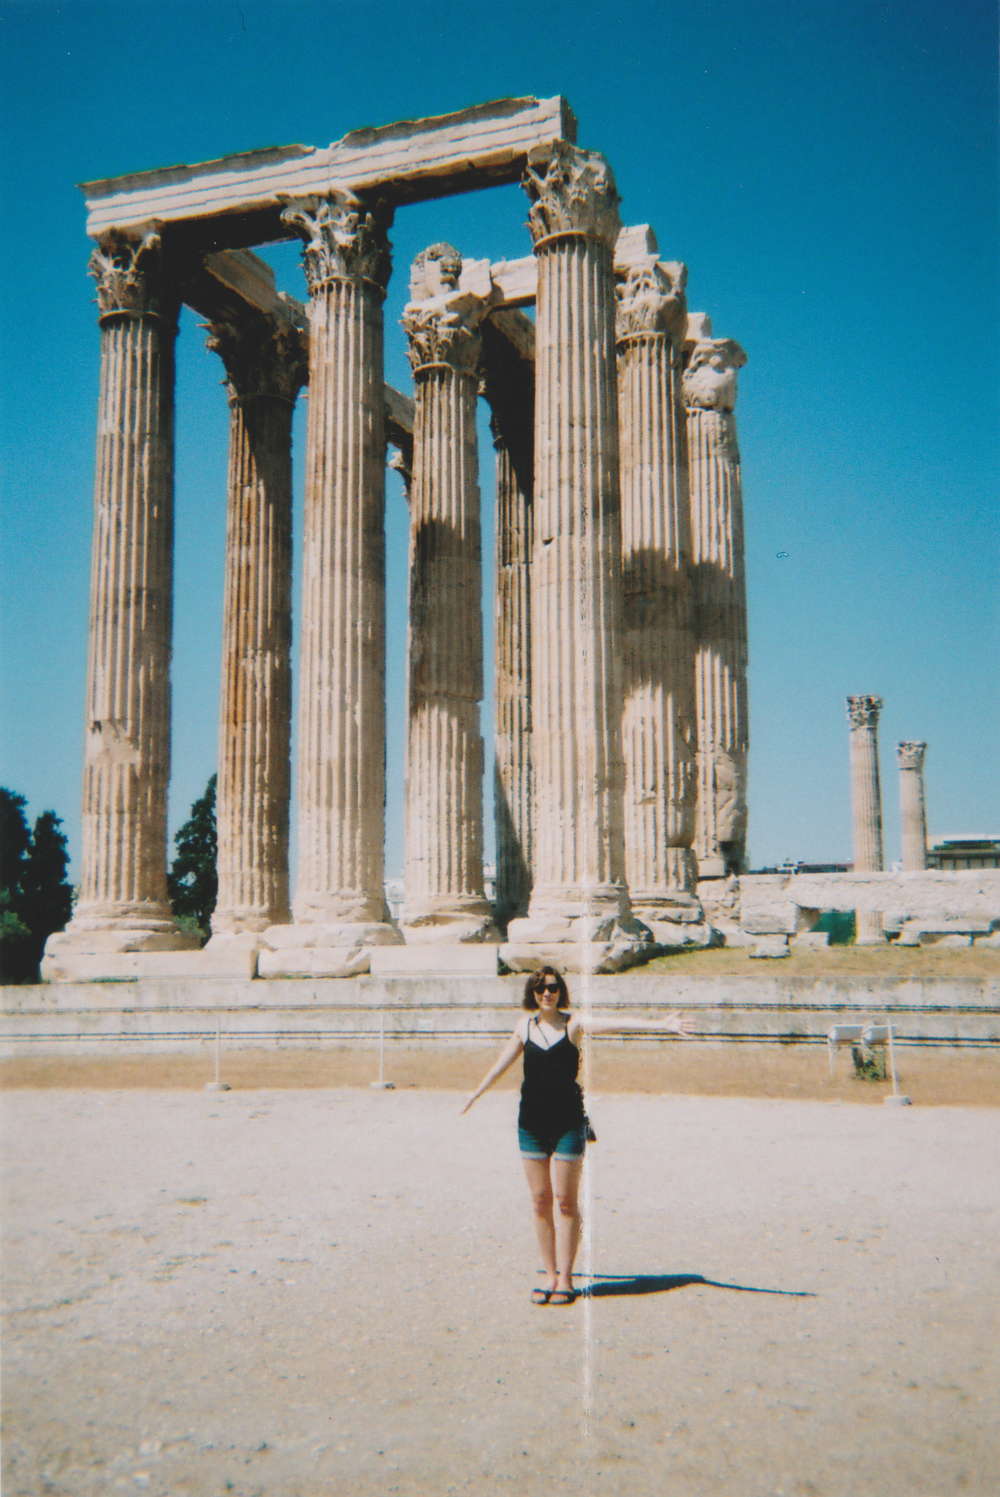 At the Temple of Olympian Zeus in Athens.